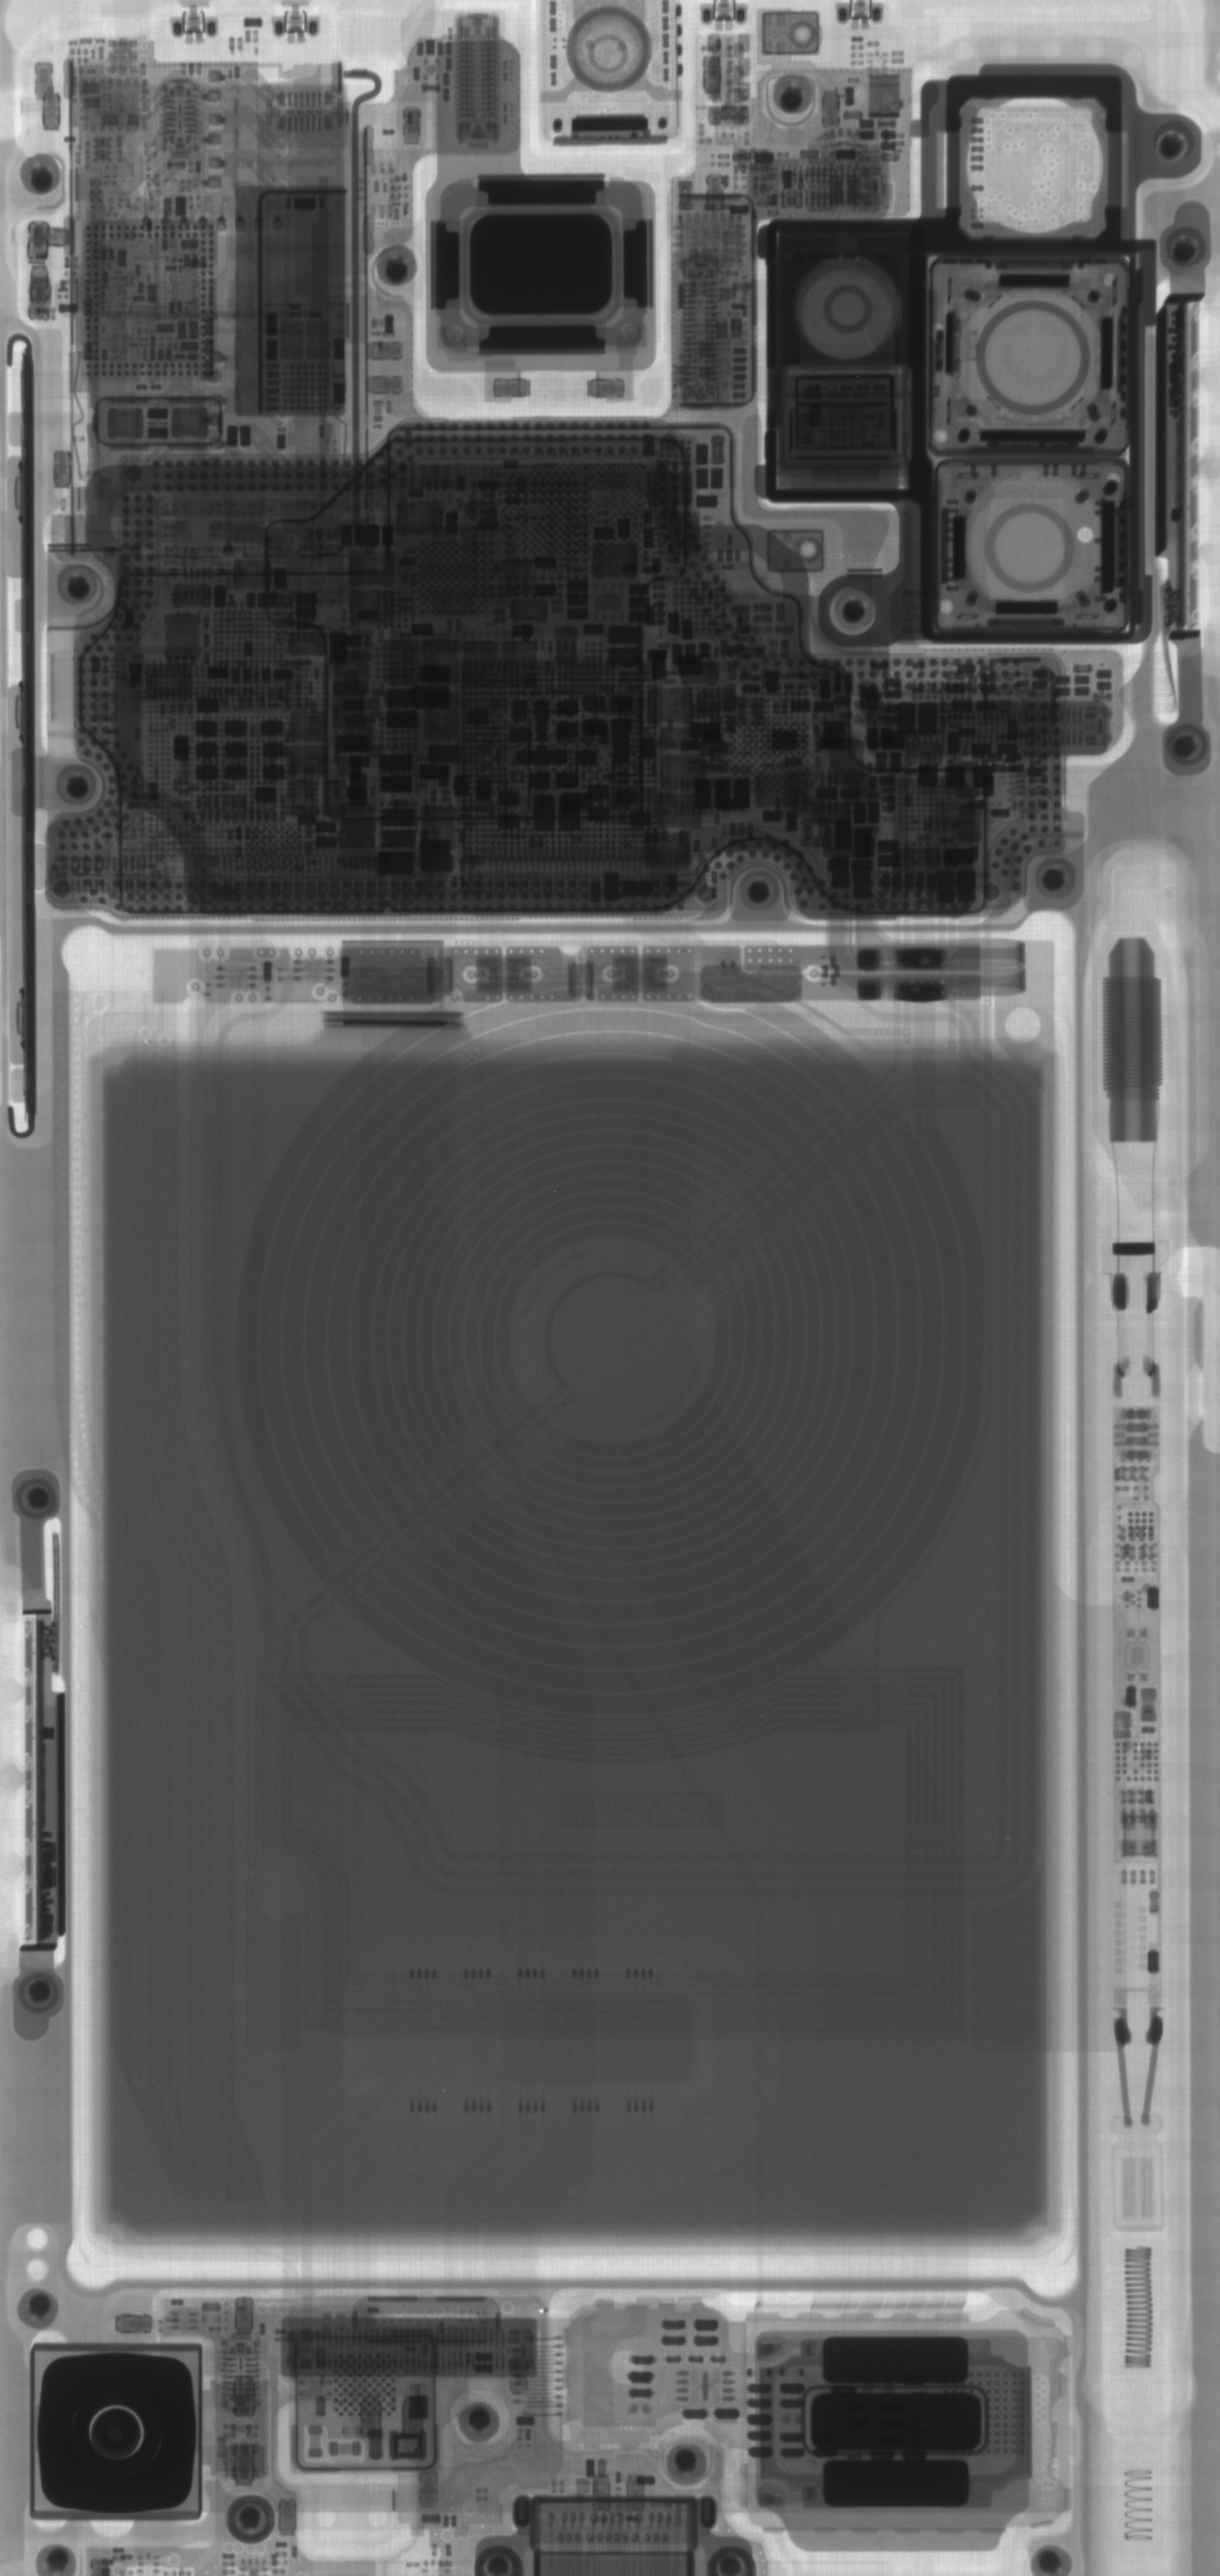 X-Ray image of the inside of the Samsung Galaxy Note10+ 5G phone.